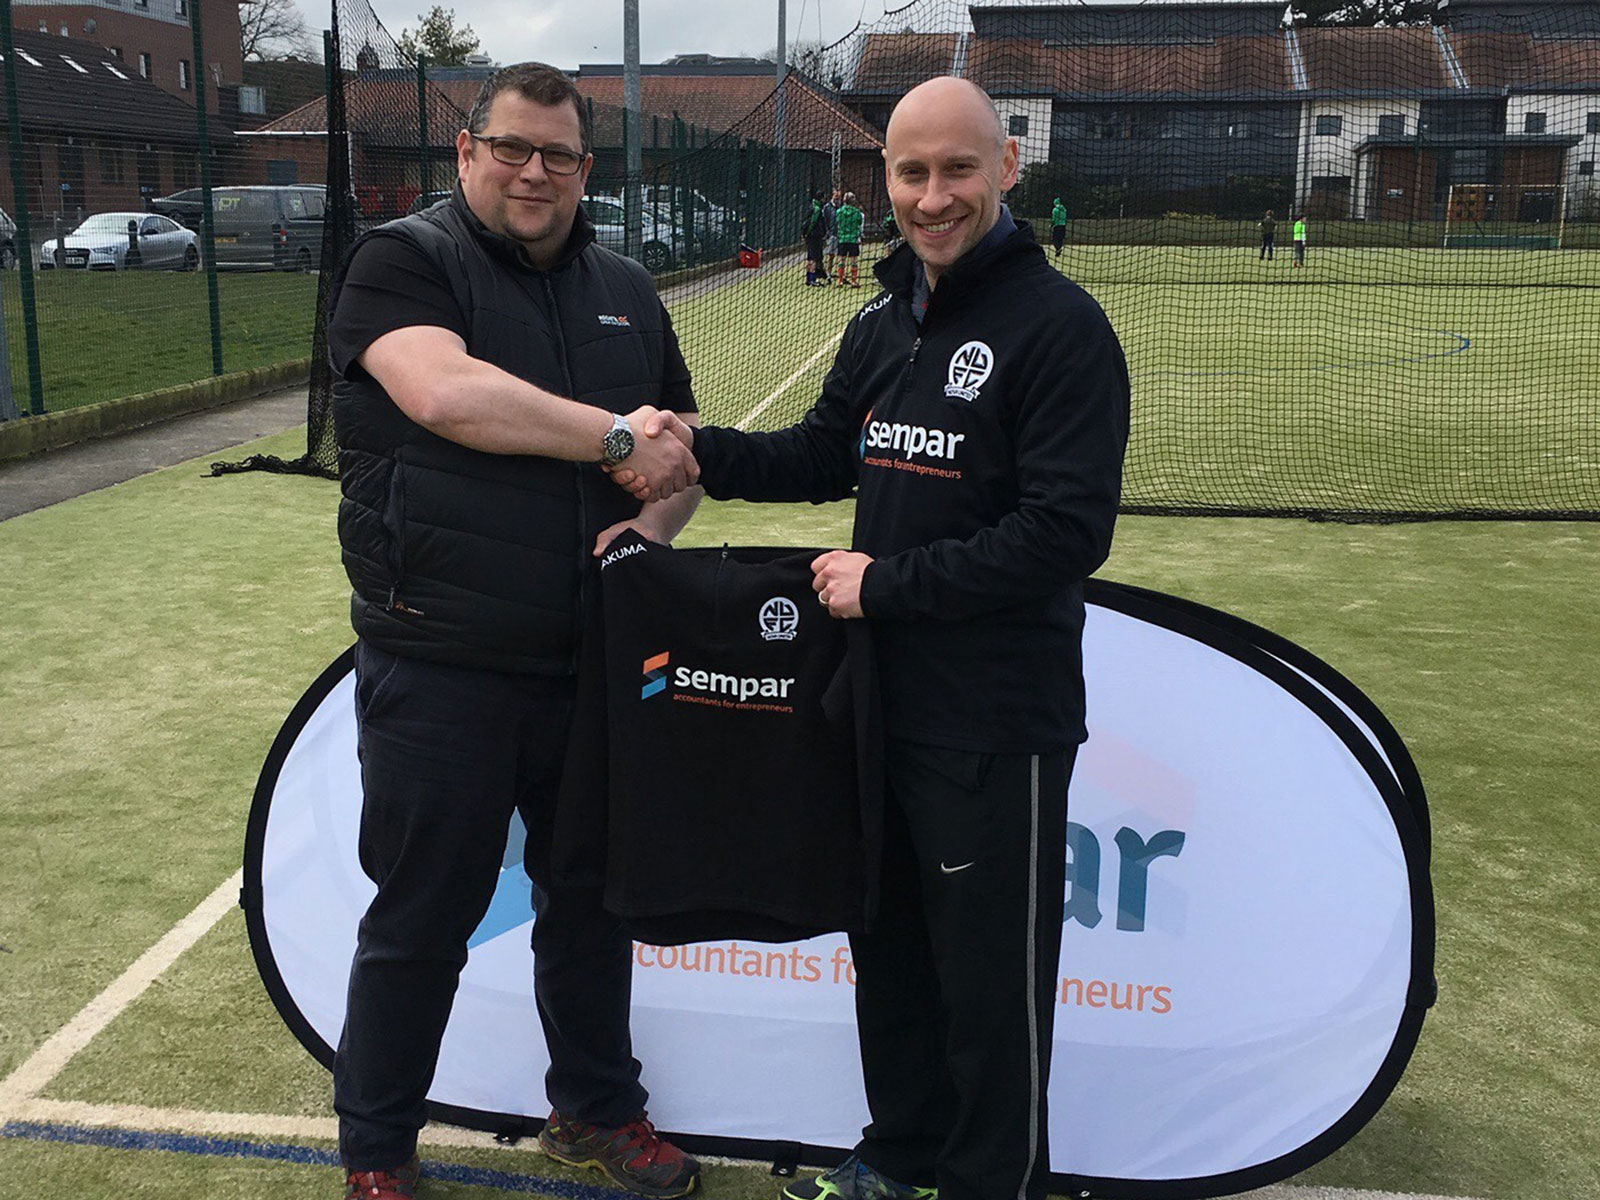 Sempar Continues to support Grass Roots Sport